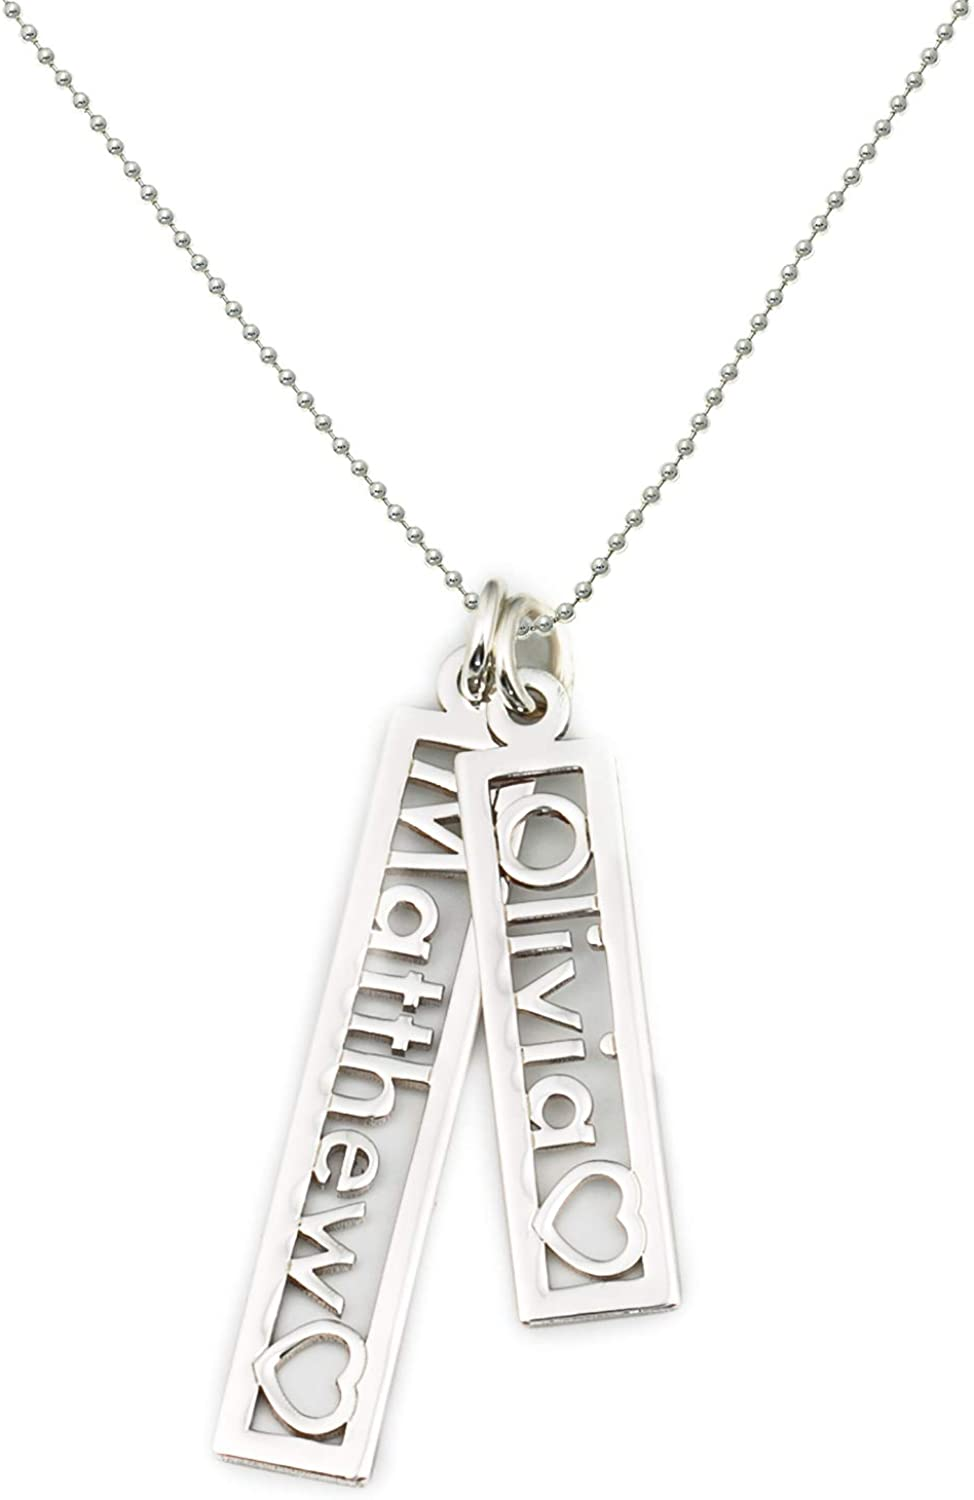 Shiny Choice of Sterling Silver Chain AJs Collection Personalized Double Open Name with Heart Cut Out Rectangle Sterling Silver Charm Necklace Customize Two Rectangle Charms Elegant Classy